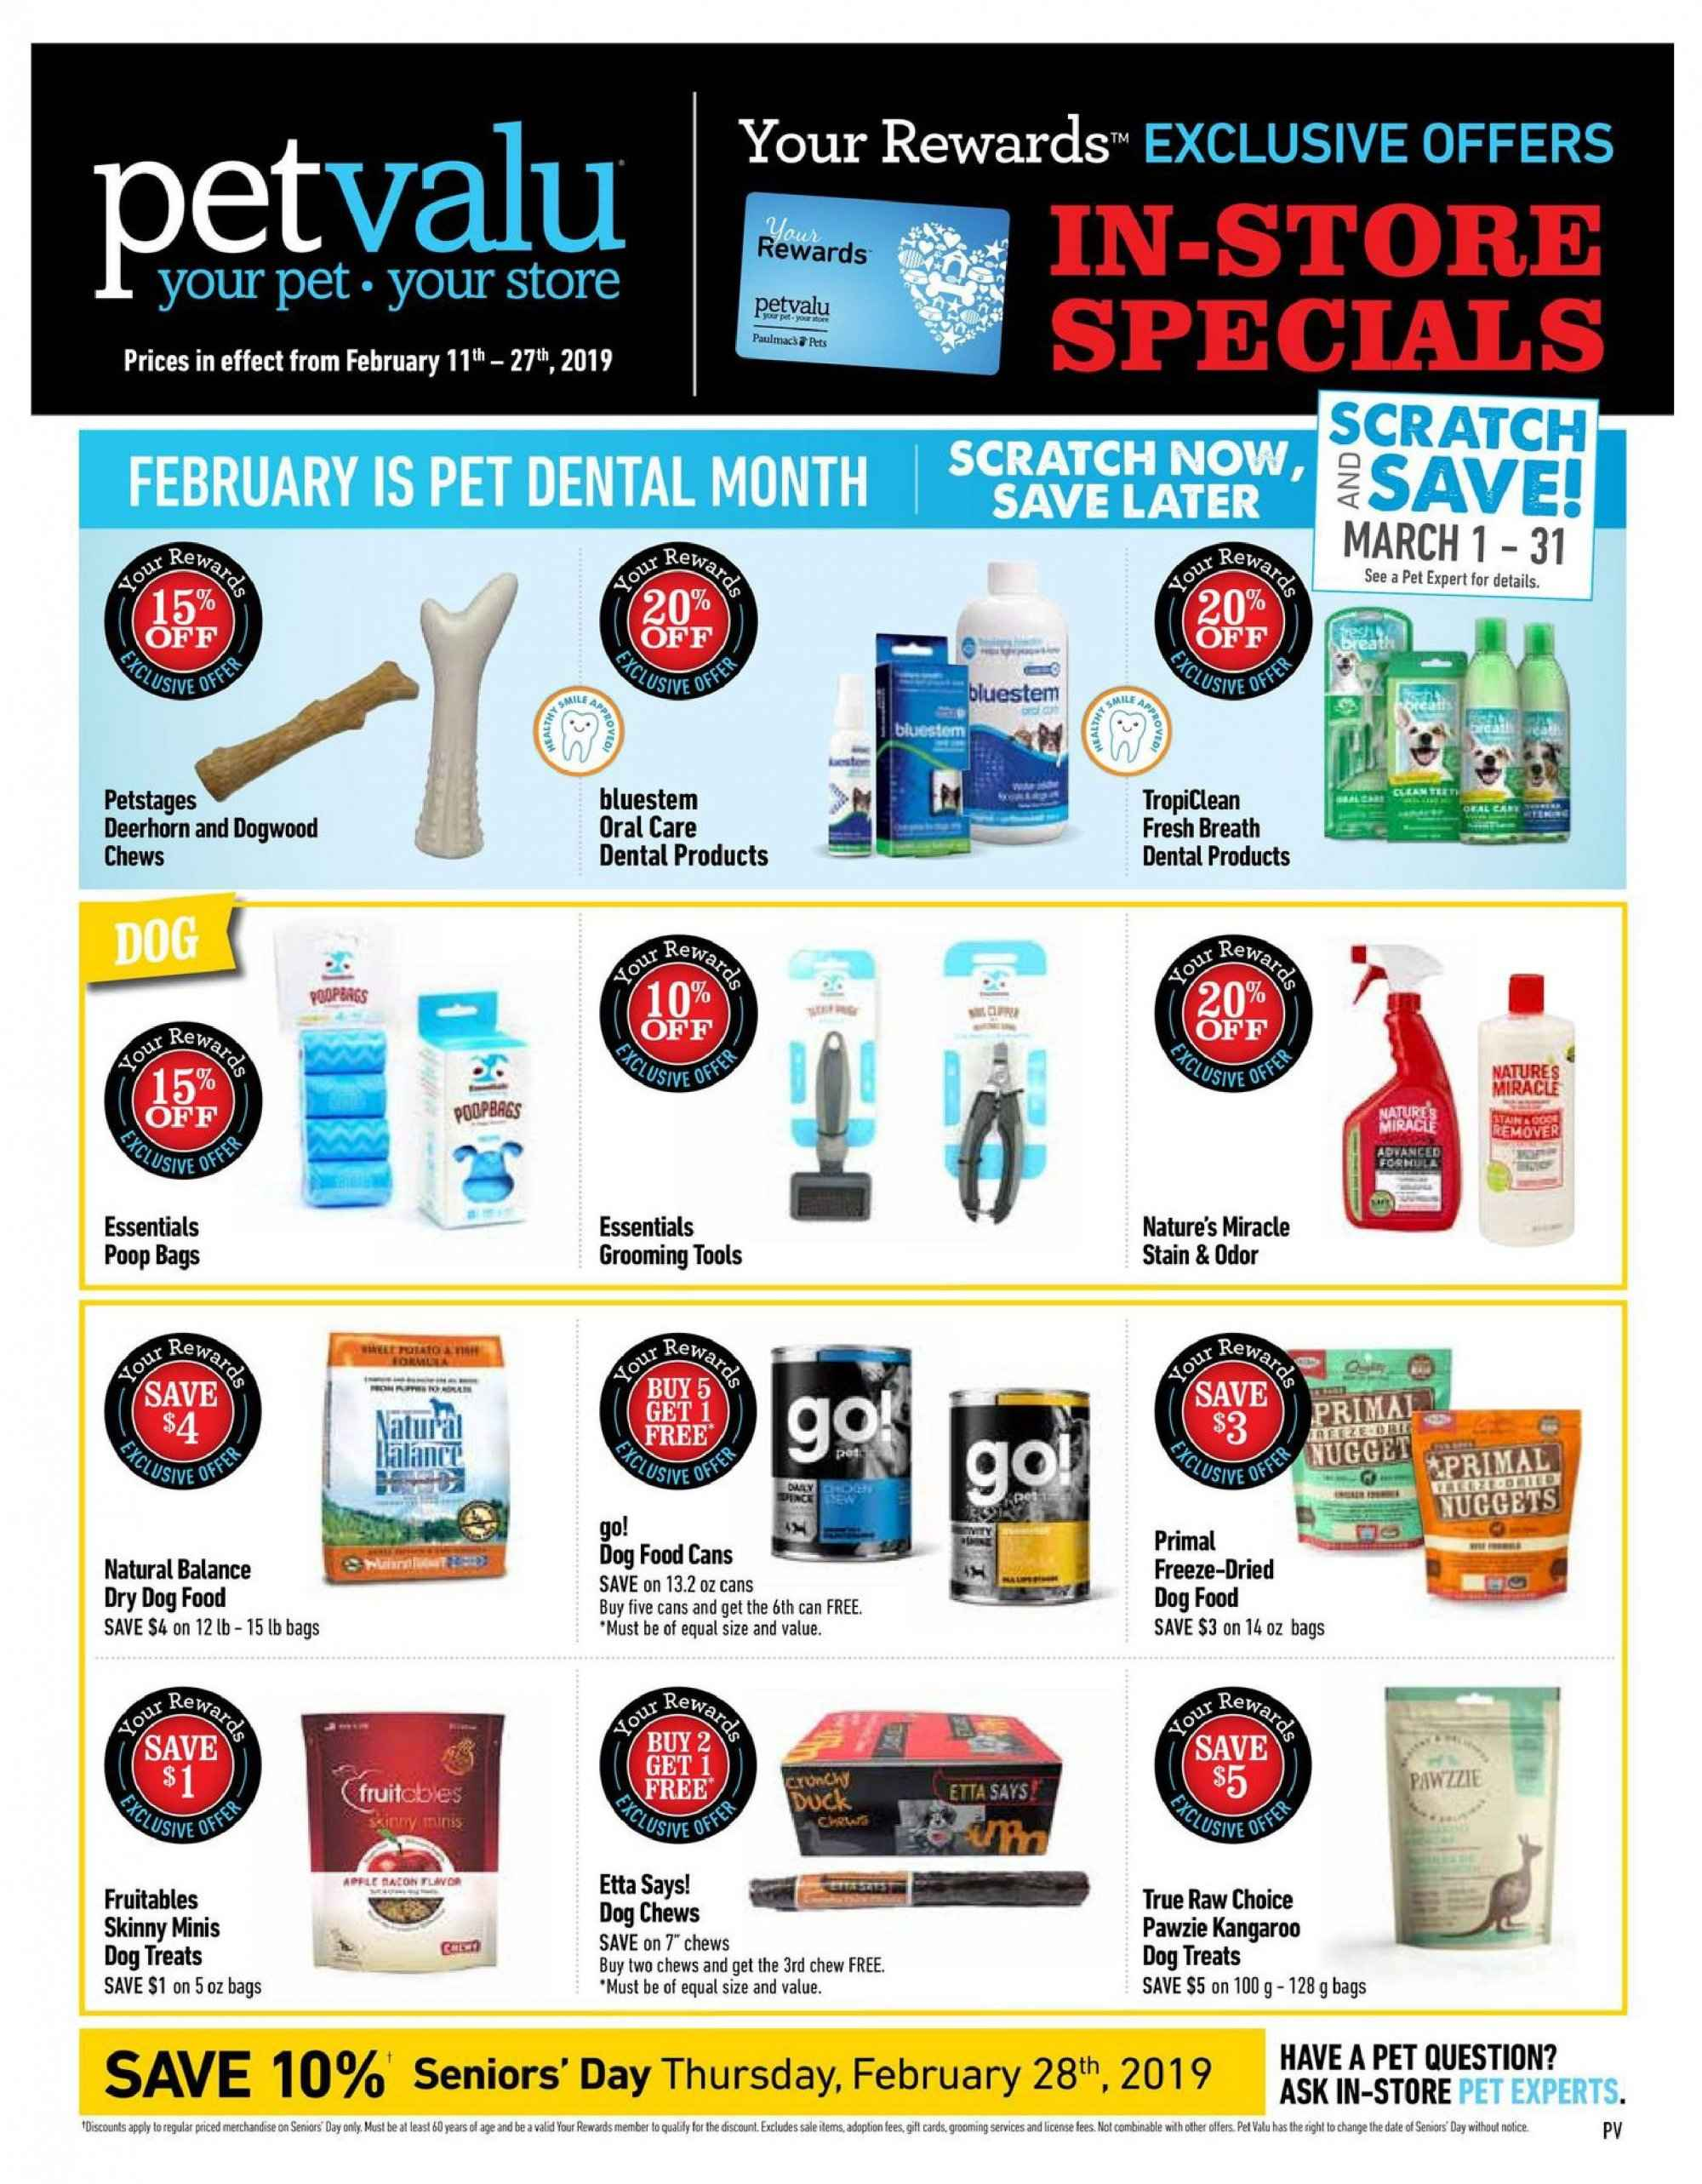 Pet Valu Flyer - February 11, 2019 - February 27, 2019 - Sales products - animal food, bag, dog food, pet, primal freeze, nuggets, pets. Page 1.